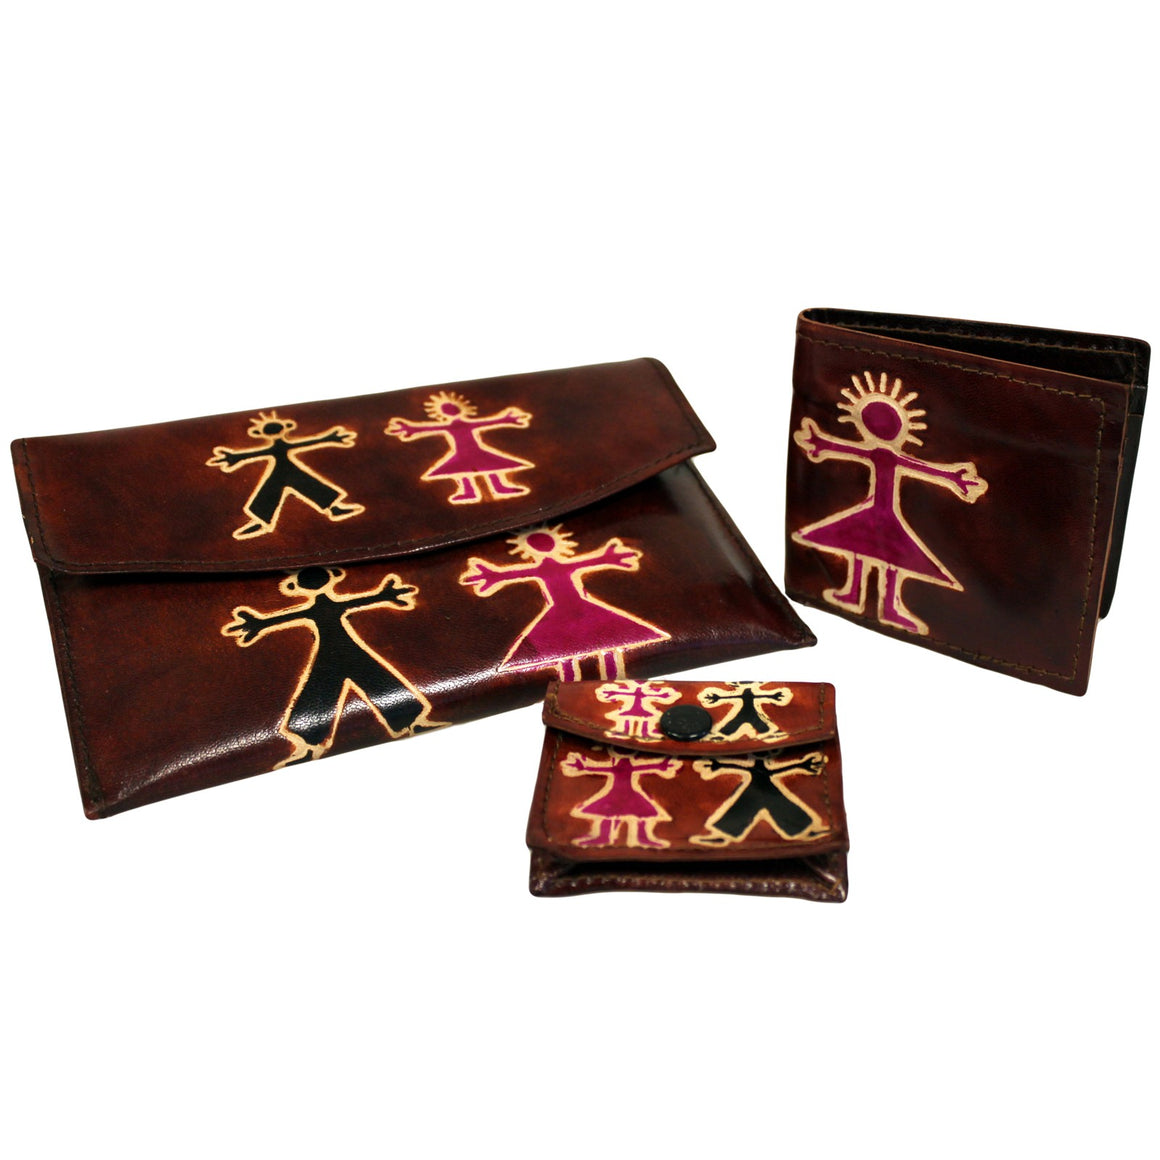 Leather Purse Set - Boy & Girl - Brown